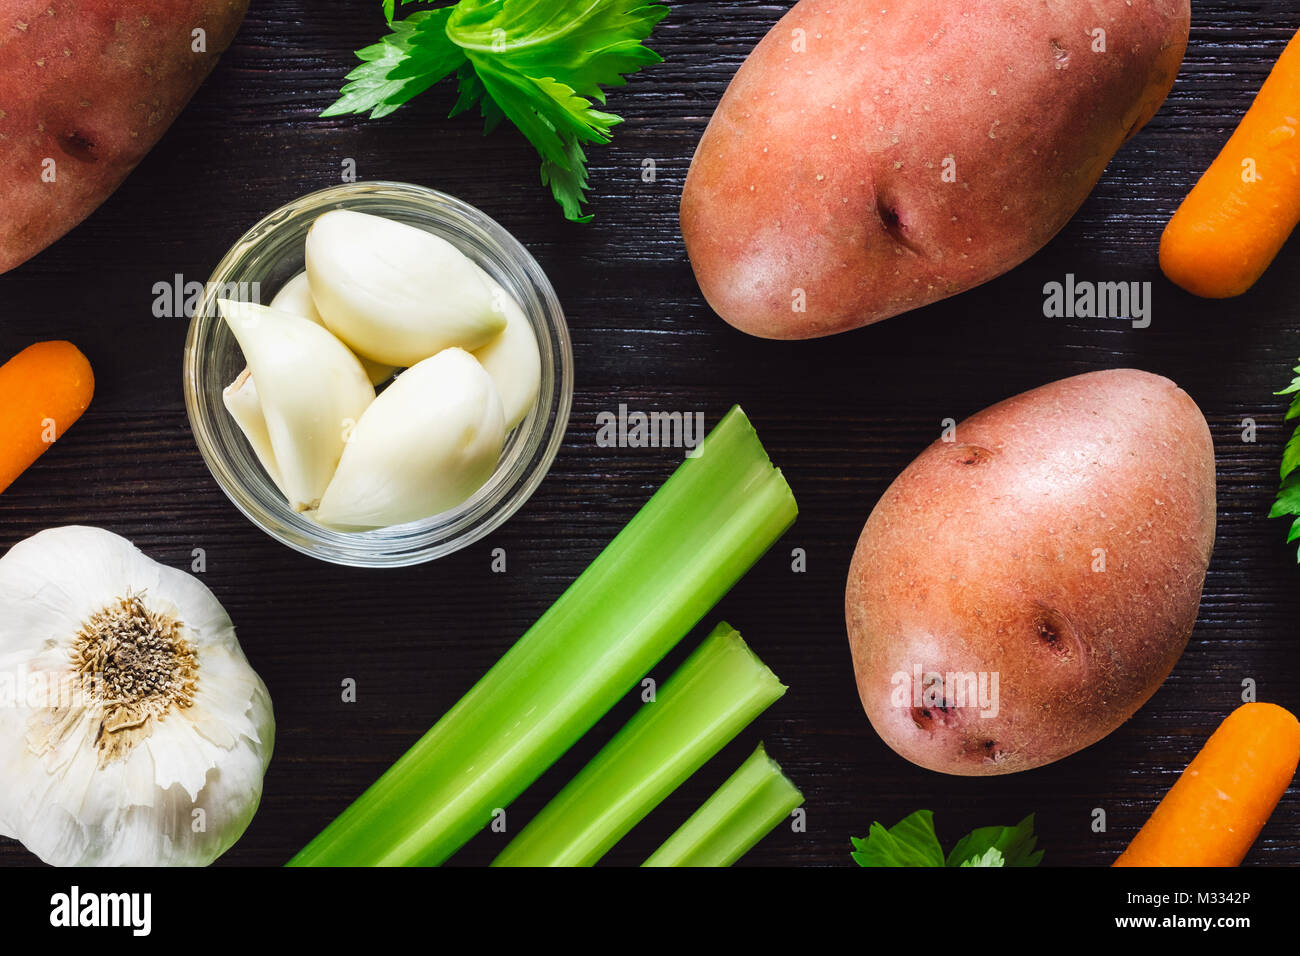 Mix of Vegetables Including Red Potatoes, Carrots, Garlic and Celery on Dark Background - Stock Image